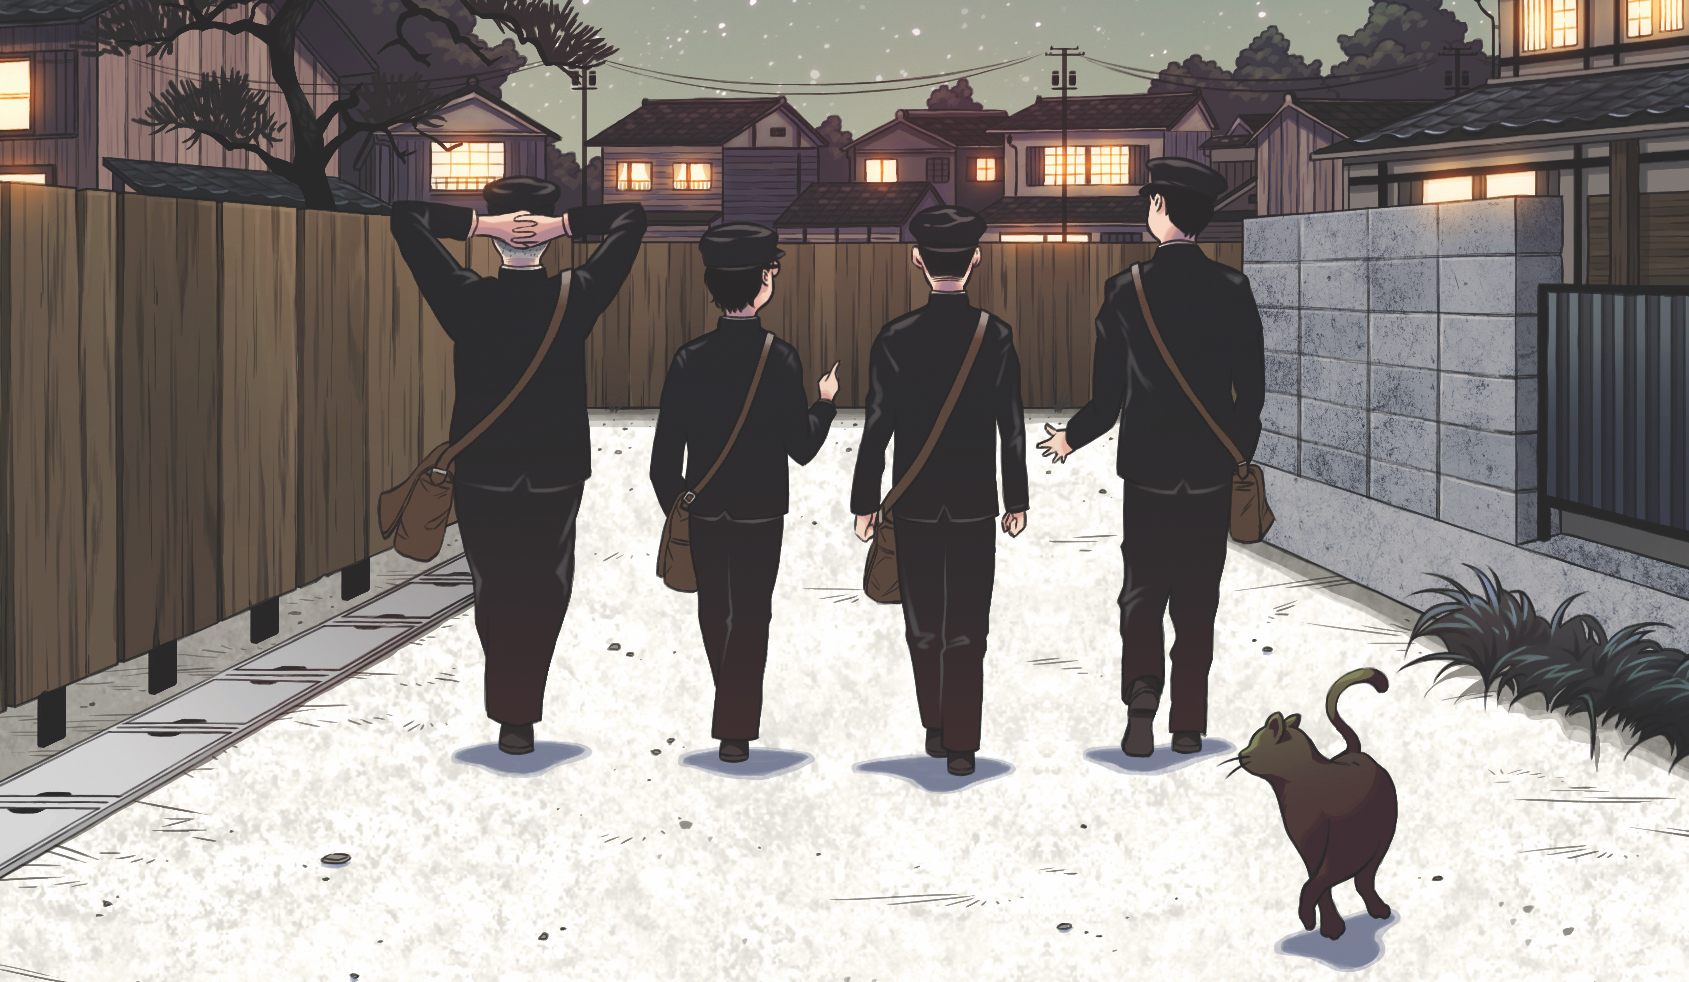 A detail from the cover of Algonquin Books' 2021 translation of Genzaburo Yoshino's novel How Do You Live?, with four Japanese schoolboys walking together on an outdoor passage between residential homes, with a cat in the foreground